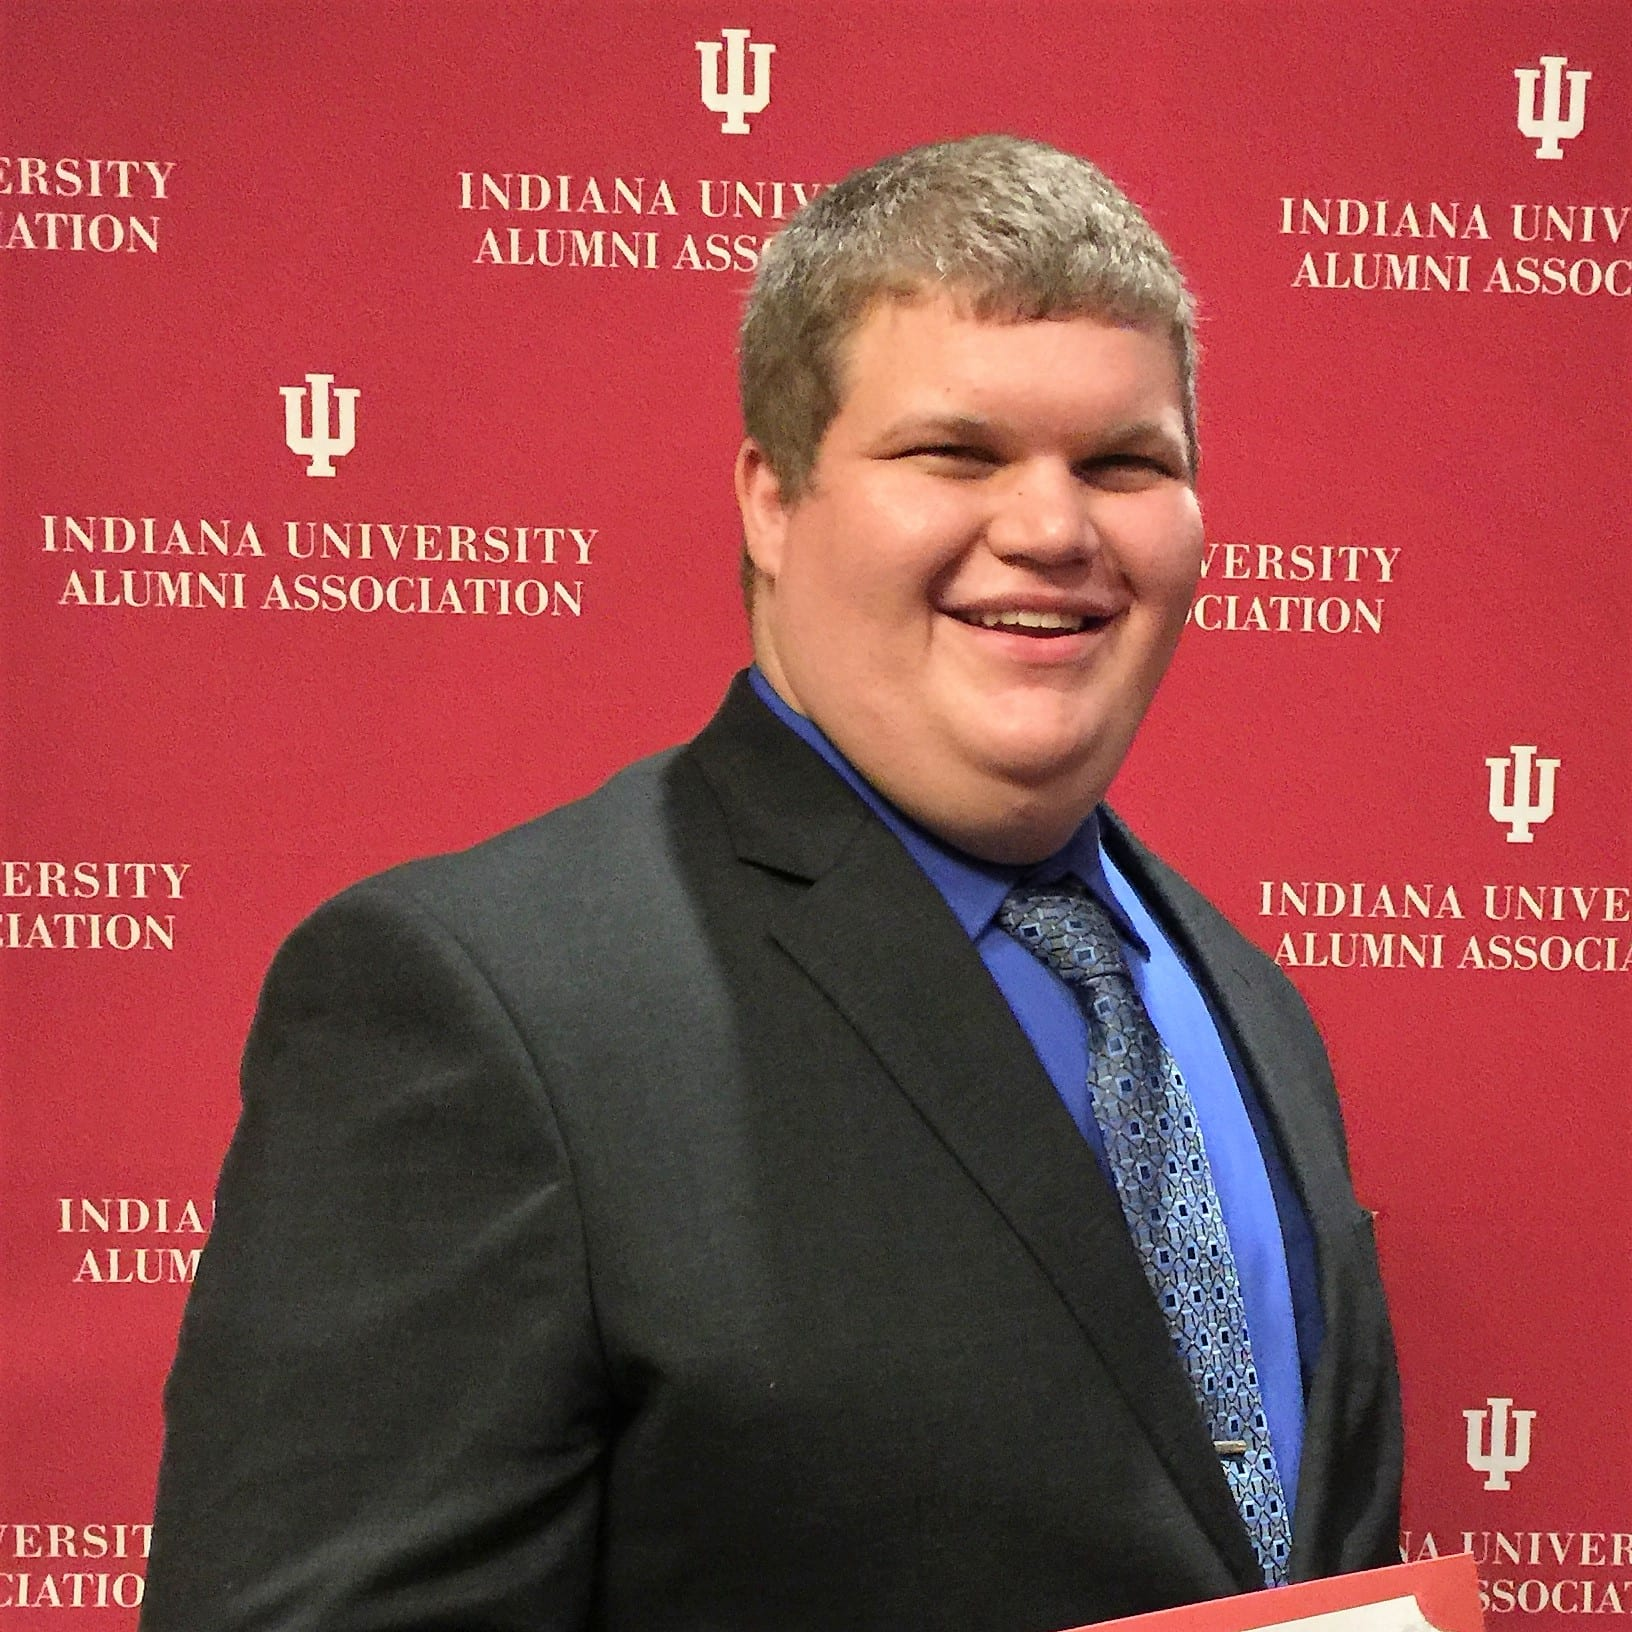 Justin Weisenbach, SPEA student chosen as IUPUI Top 100 Students